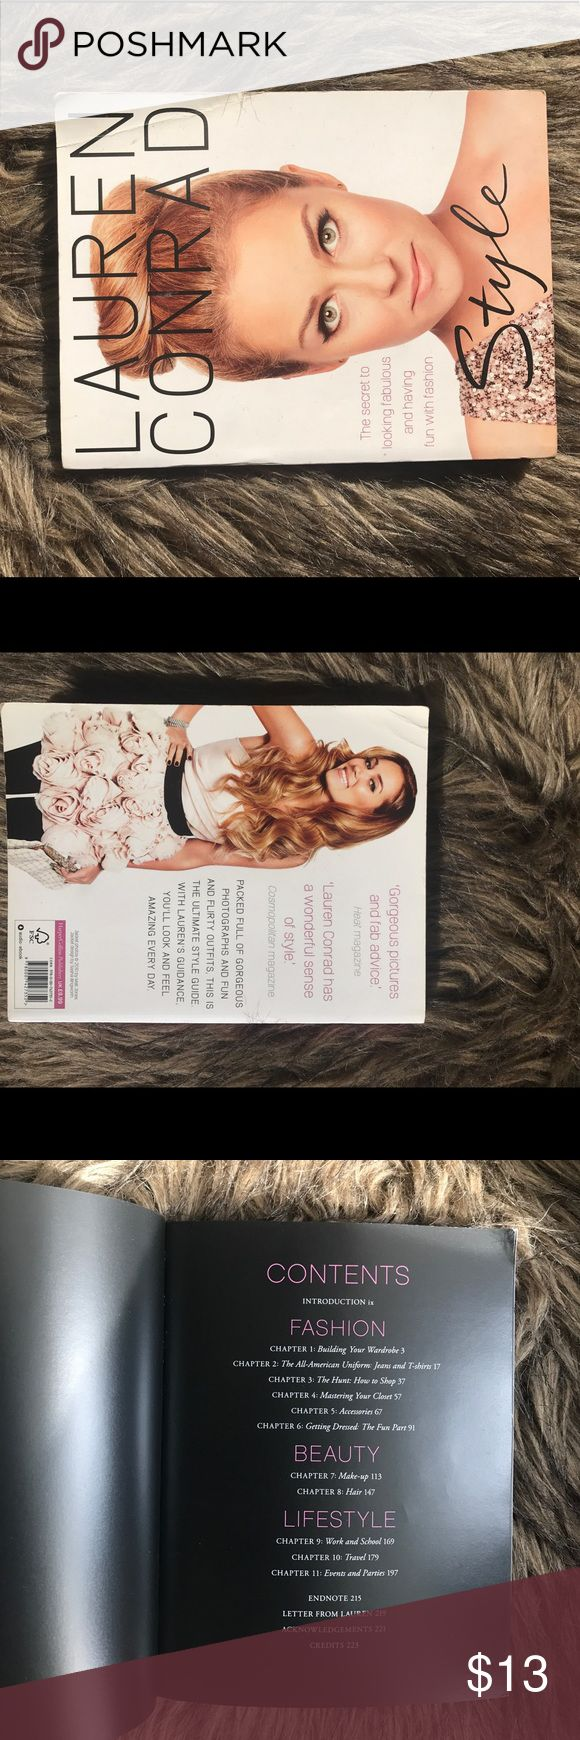 Style by Lauren Conrad Style and beauty book written by Lauren Conrad LC Lauren Conrad Other